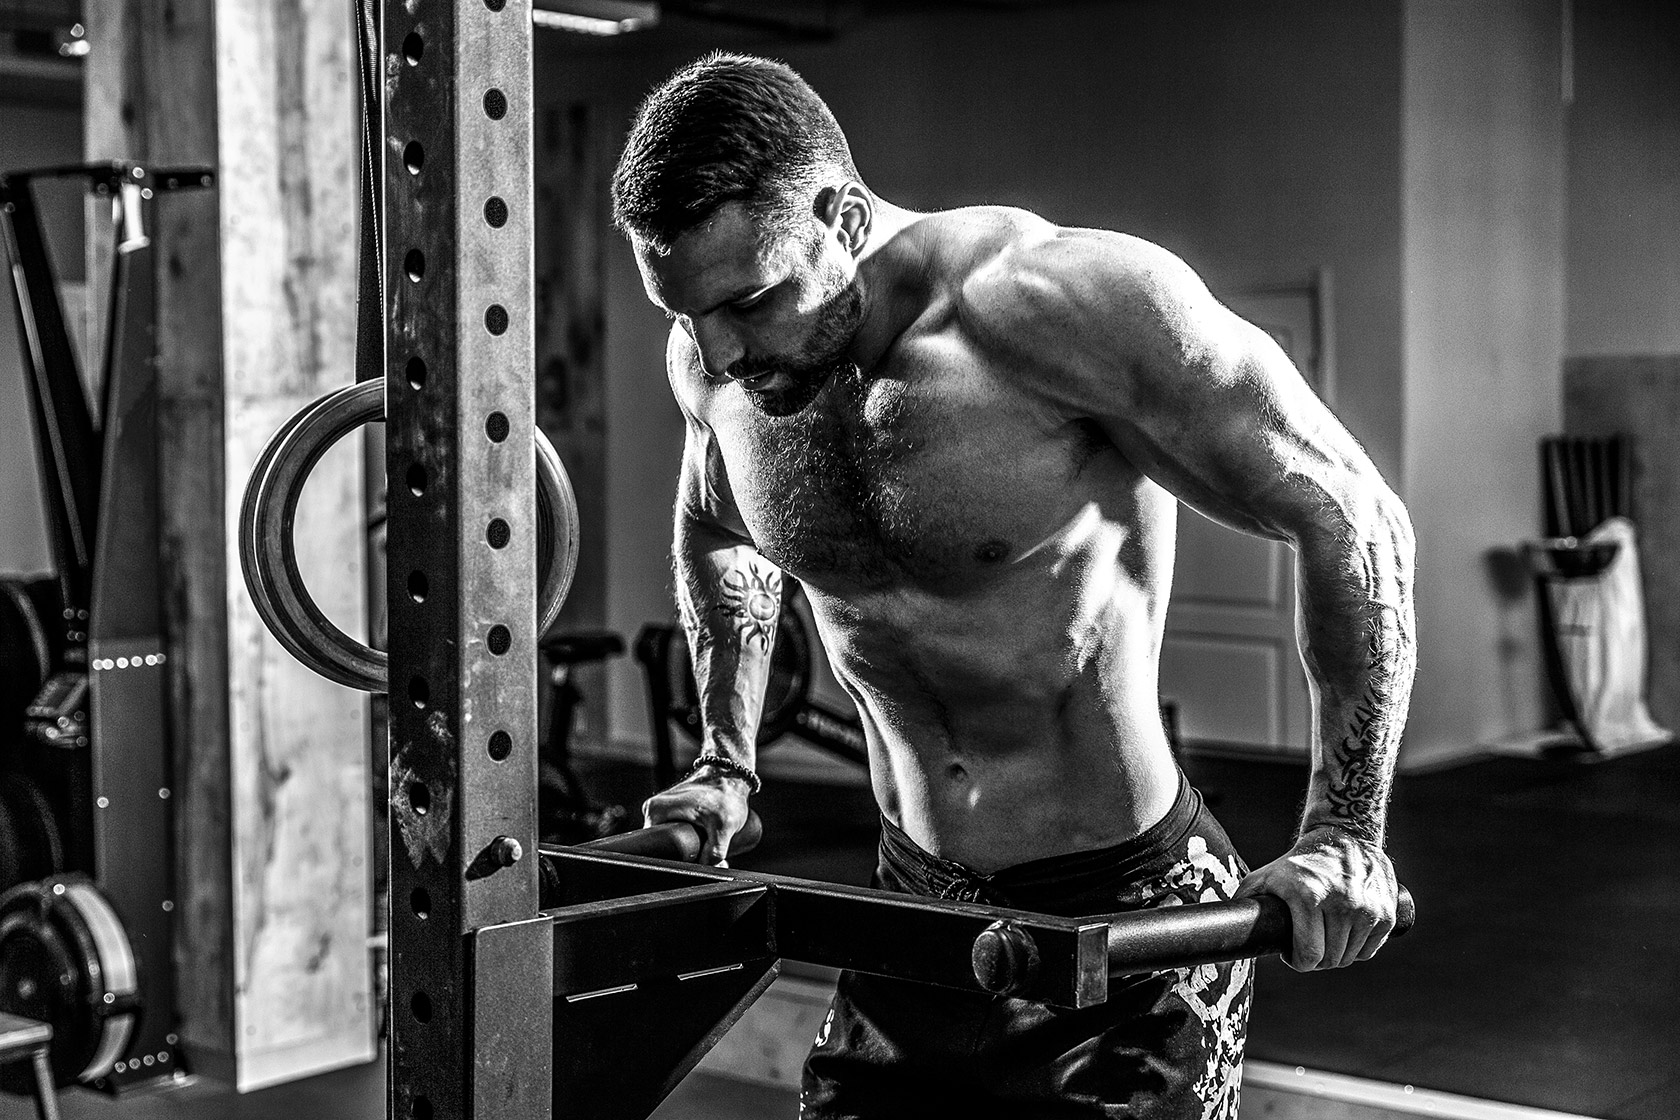 How Often Should You Lift To Build Muscle?